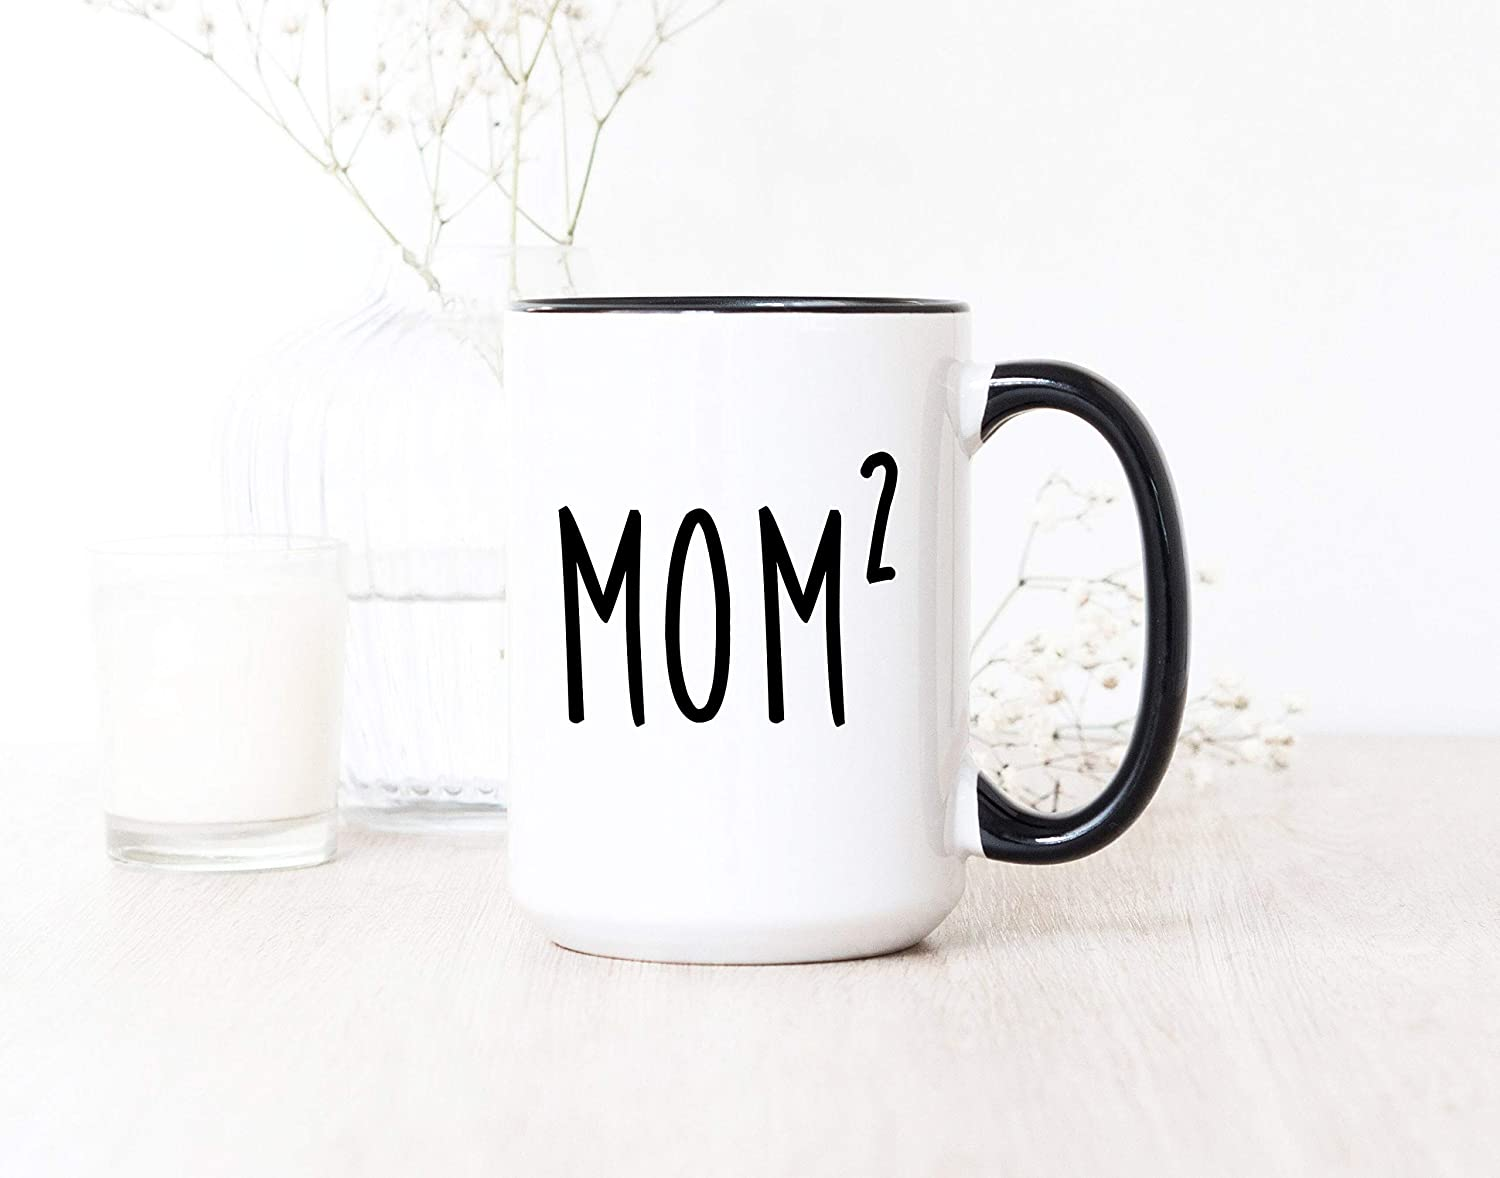 Lplpol New Pregnancy Gifts New Mom Gift Gifts For New Mom Gifts For Pregnancy Baby Shower For Boy Funny Pregnancy Gifts 15 oz